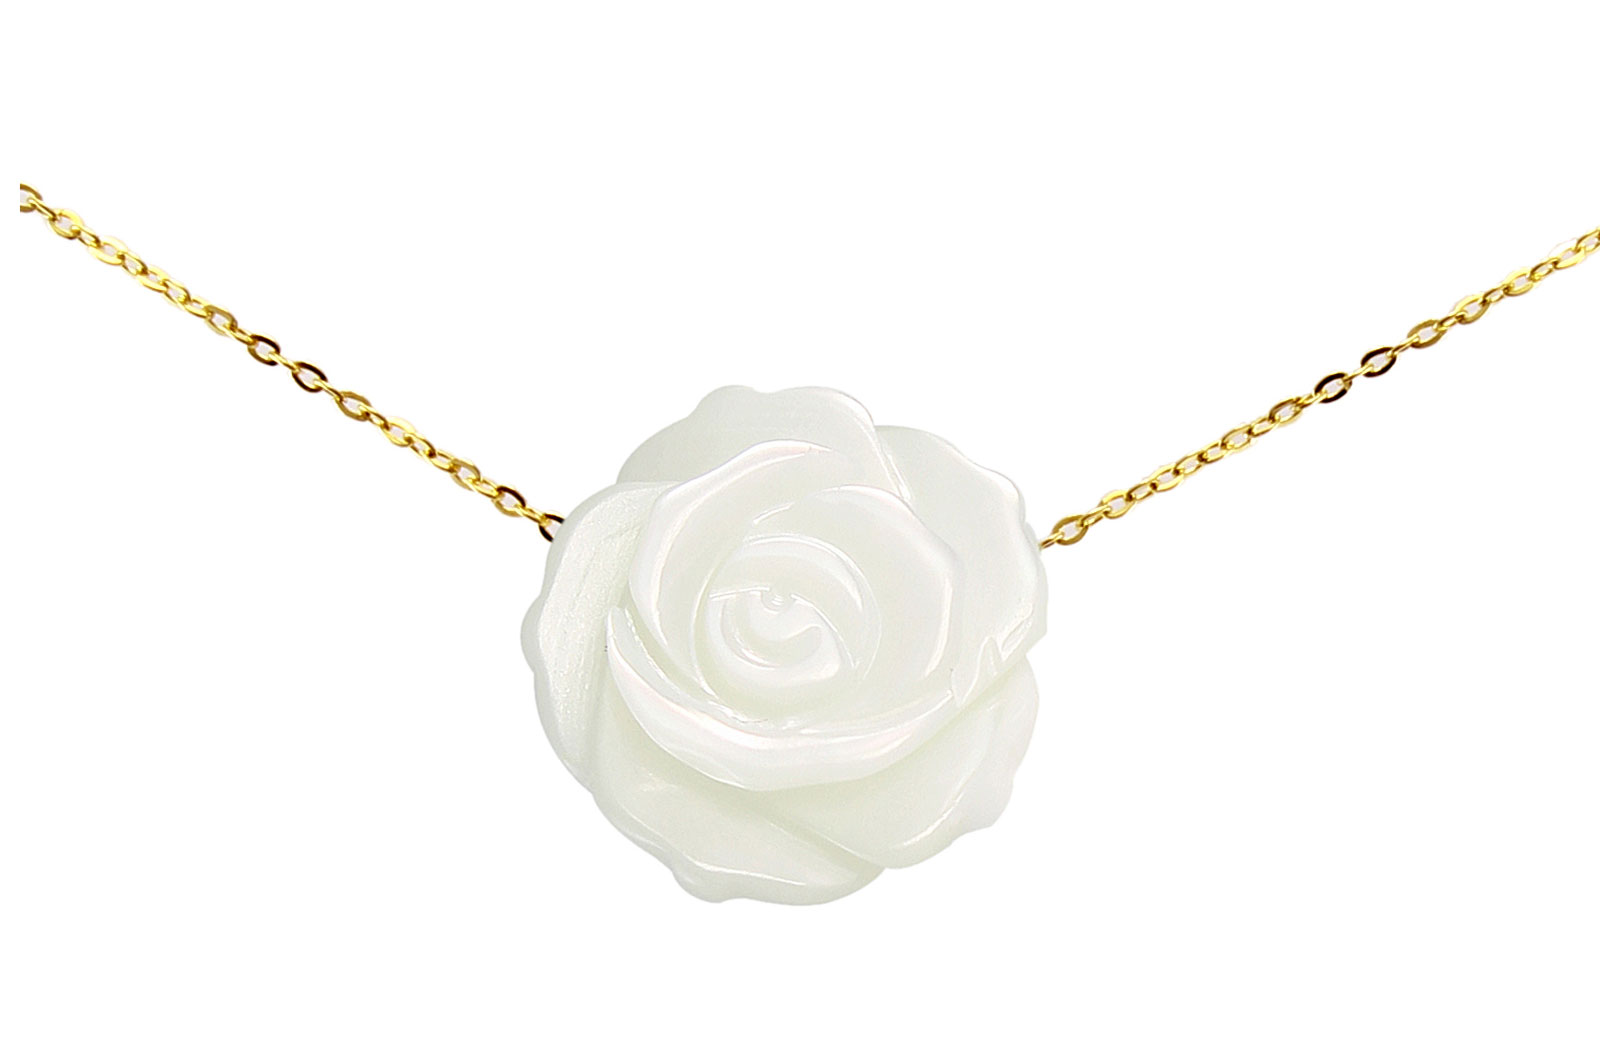 VP Jewels 18K Solid Gold 12mm Rose Carved Mother of Pearl Pendant Necklace